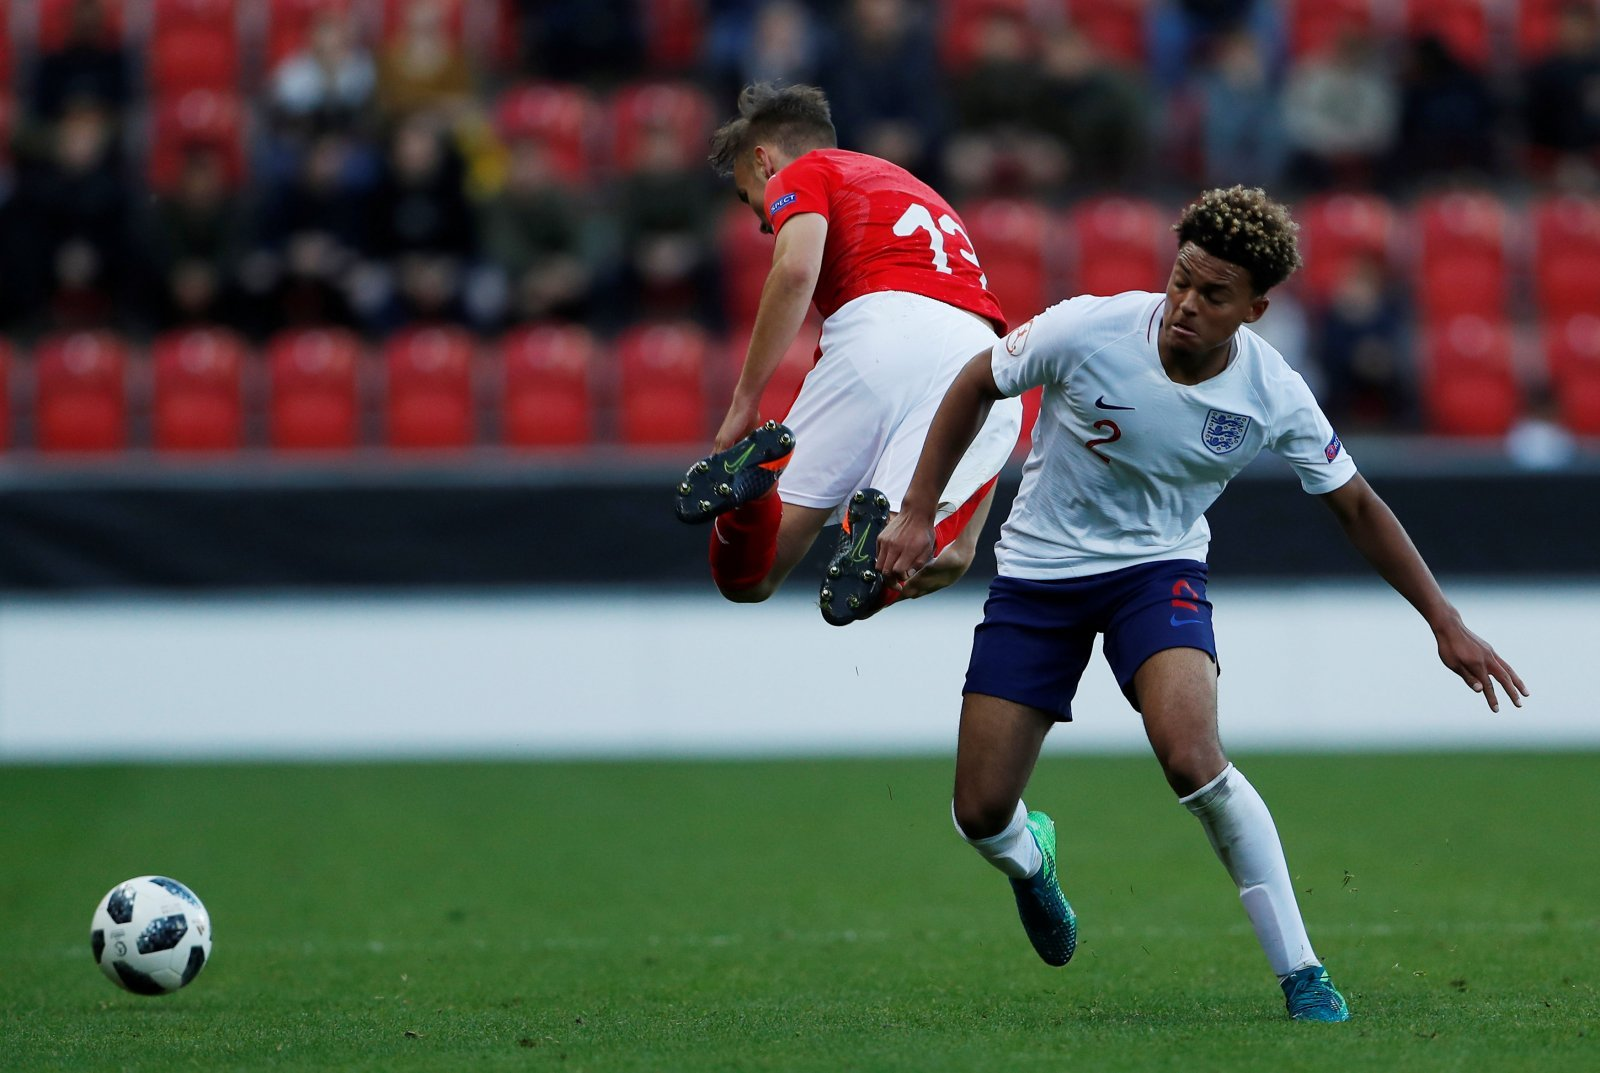 Potential consequences: Arsenal move for the exciting Dylan Crowe